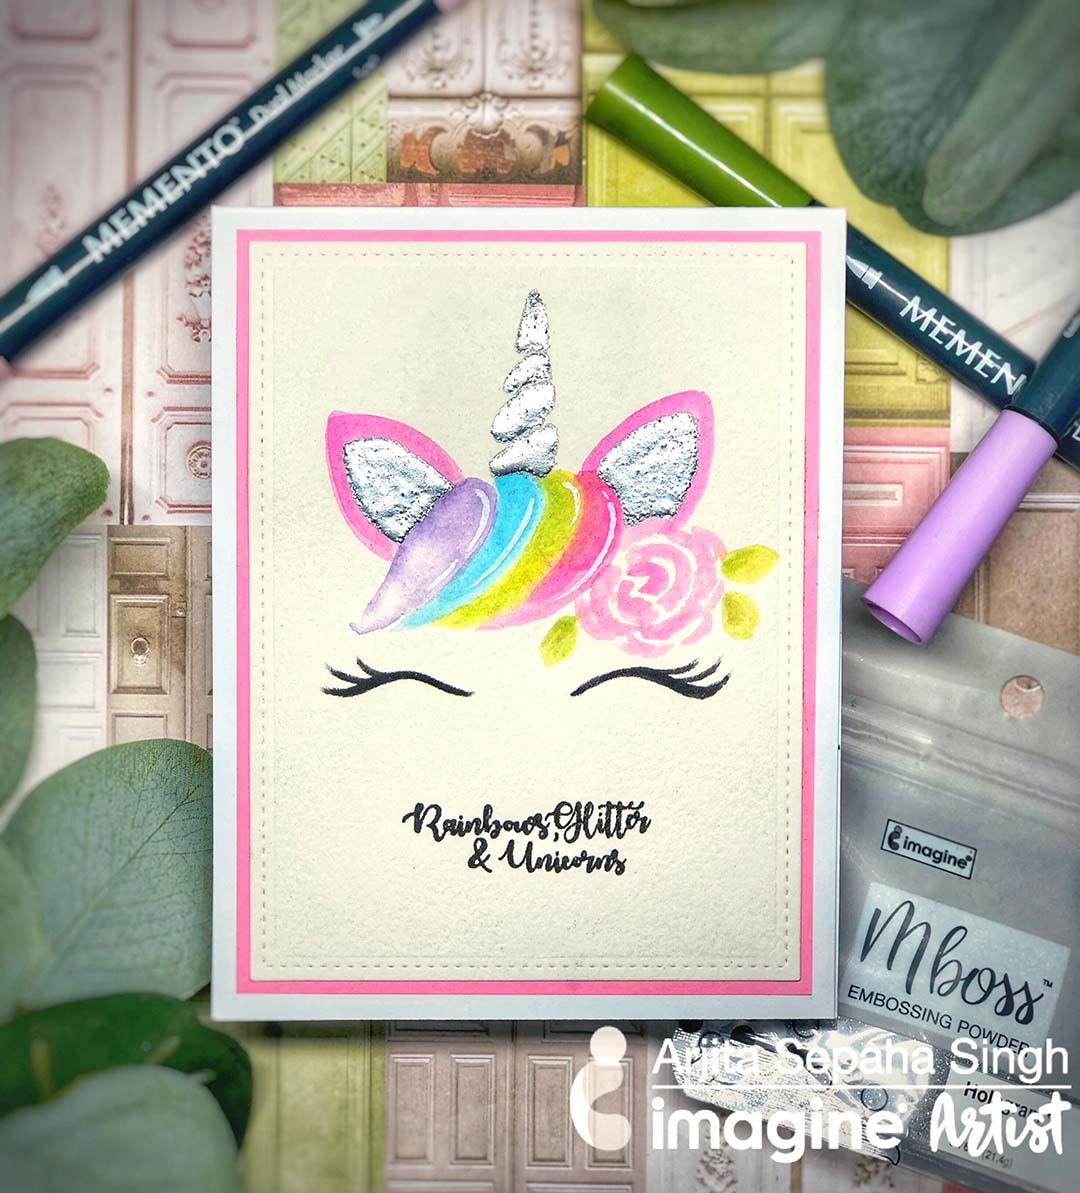 Handdrawn and painted unicorn image on a cute card for birthdays, showers or other greetings.